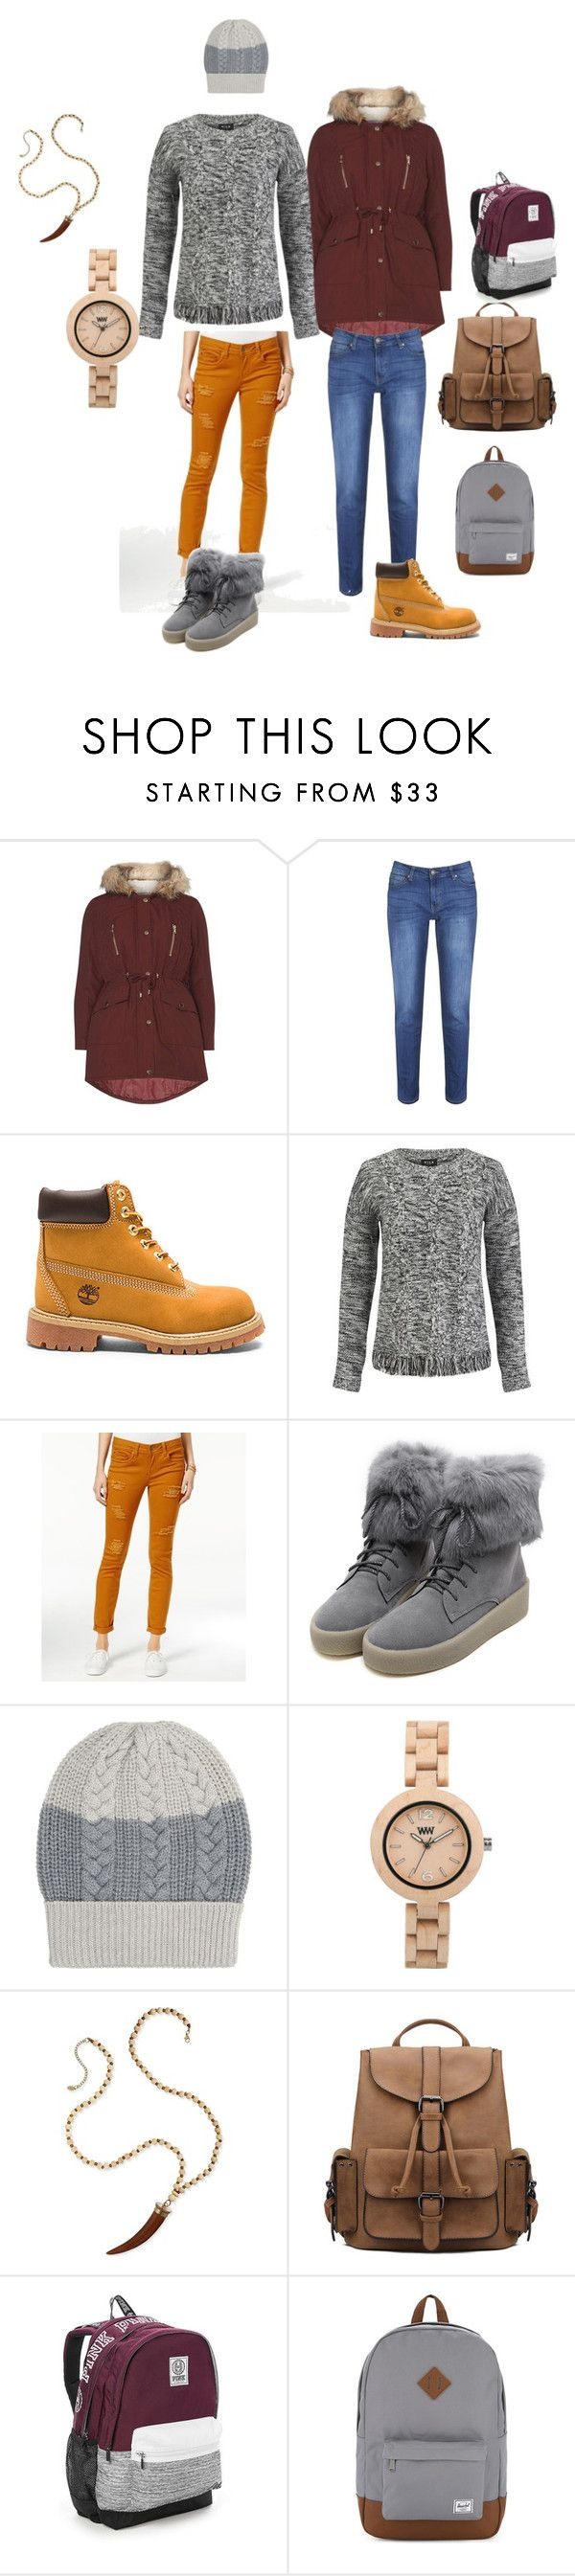 """CANDA shopping fall16"" by meanixee on Polyvore featuring Dorothy Perkins, Brakeburn, Timberland, VILA, Dollhouse, WithChic, FAY, WeWood, Victoria's Secret and Herschel Supply Co."